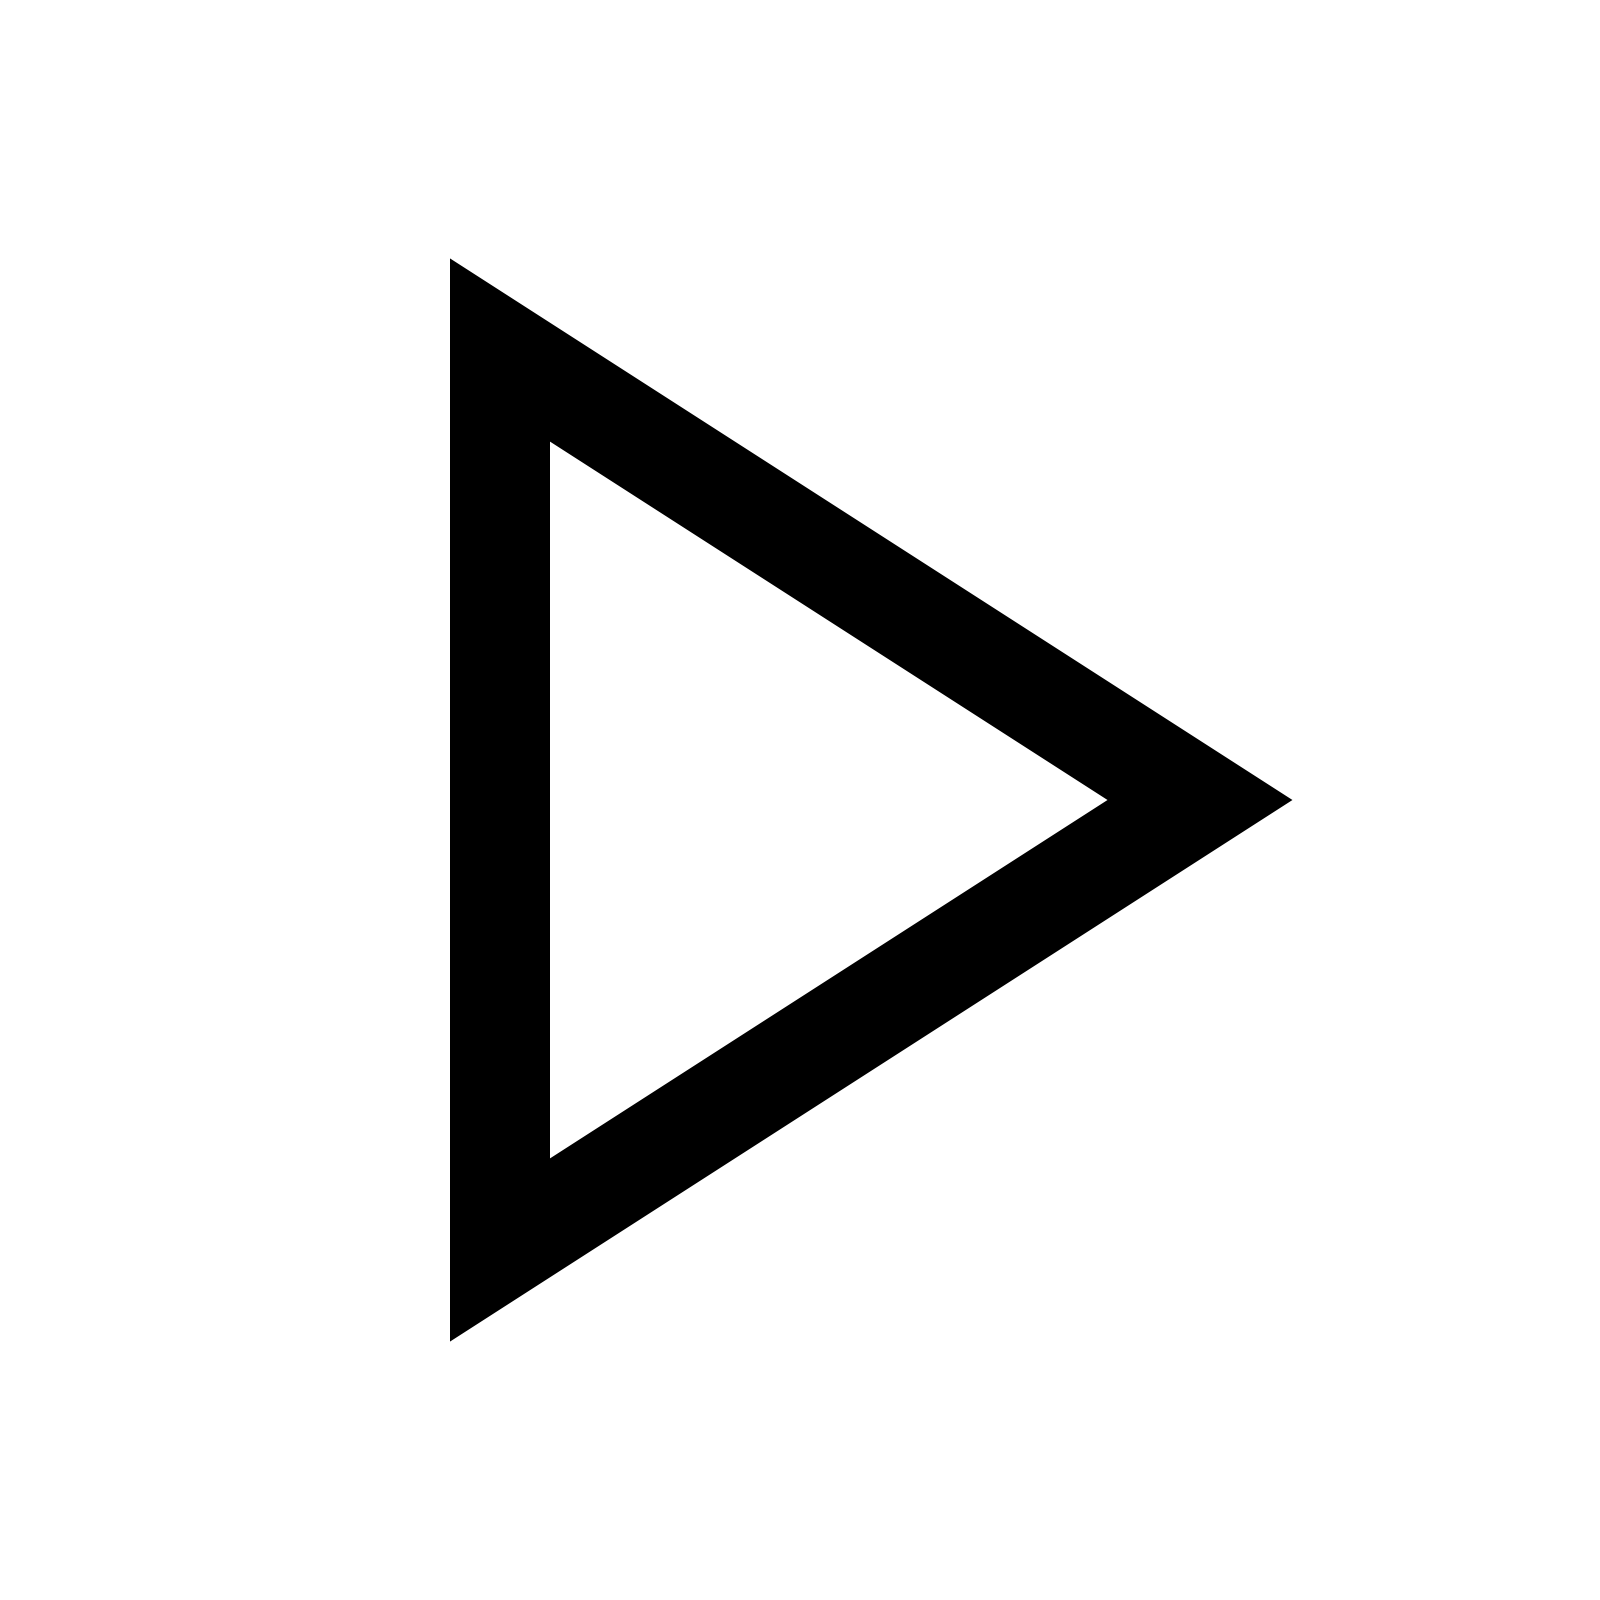 Play Button PNG - 23760